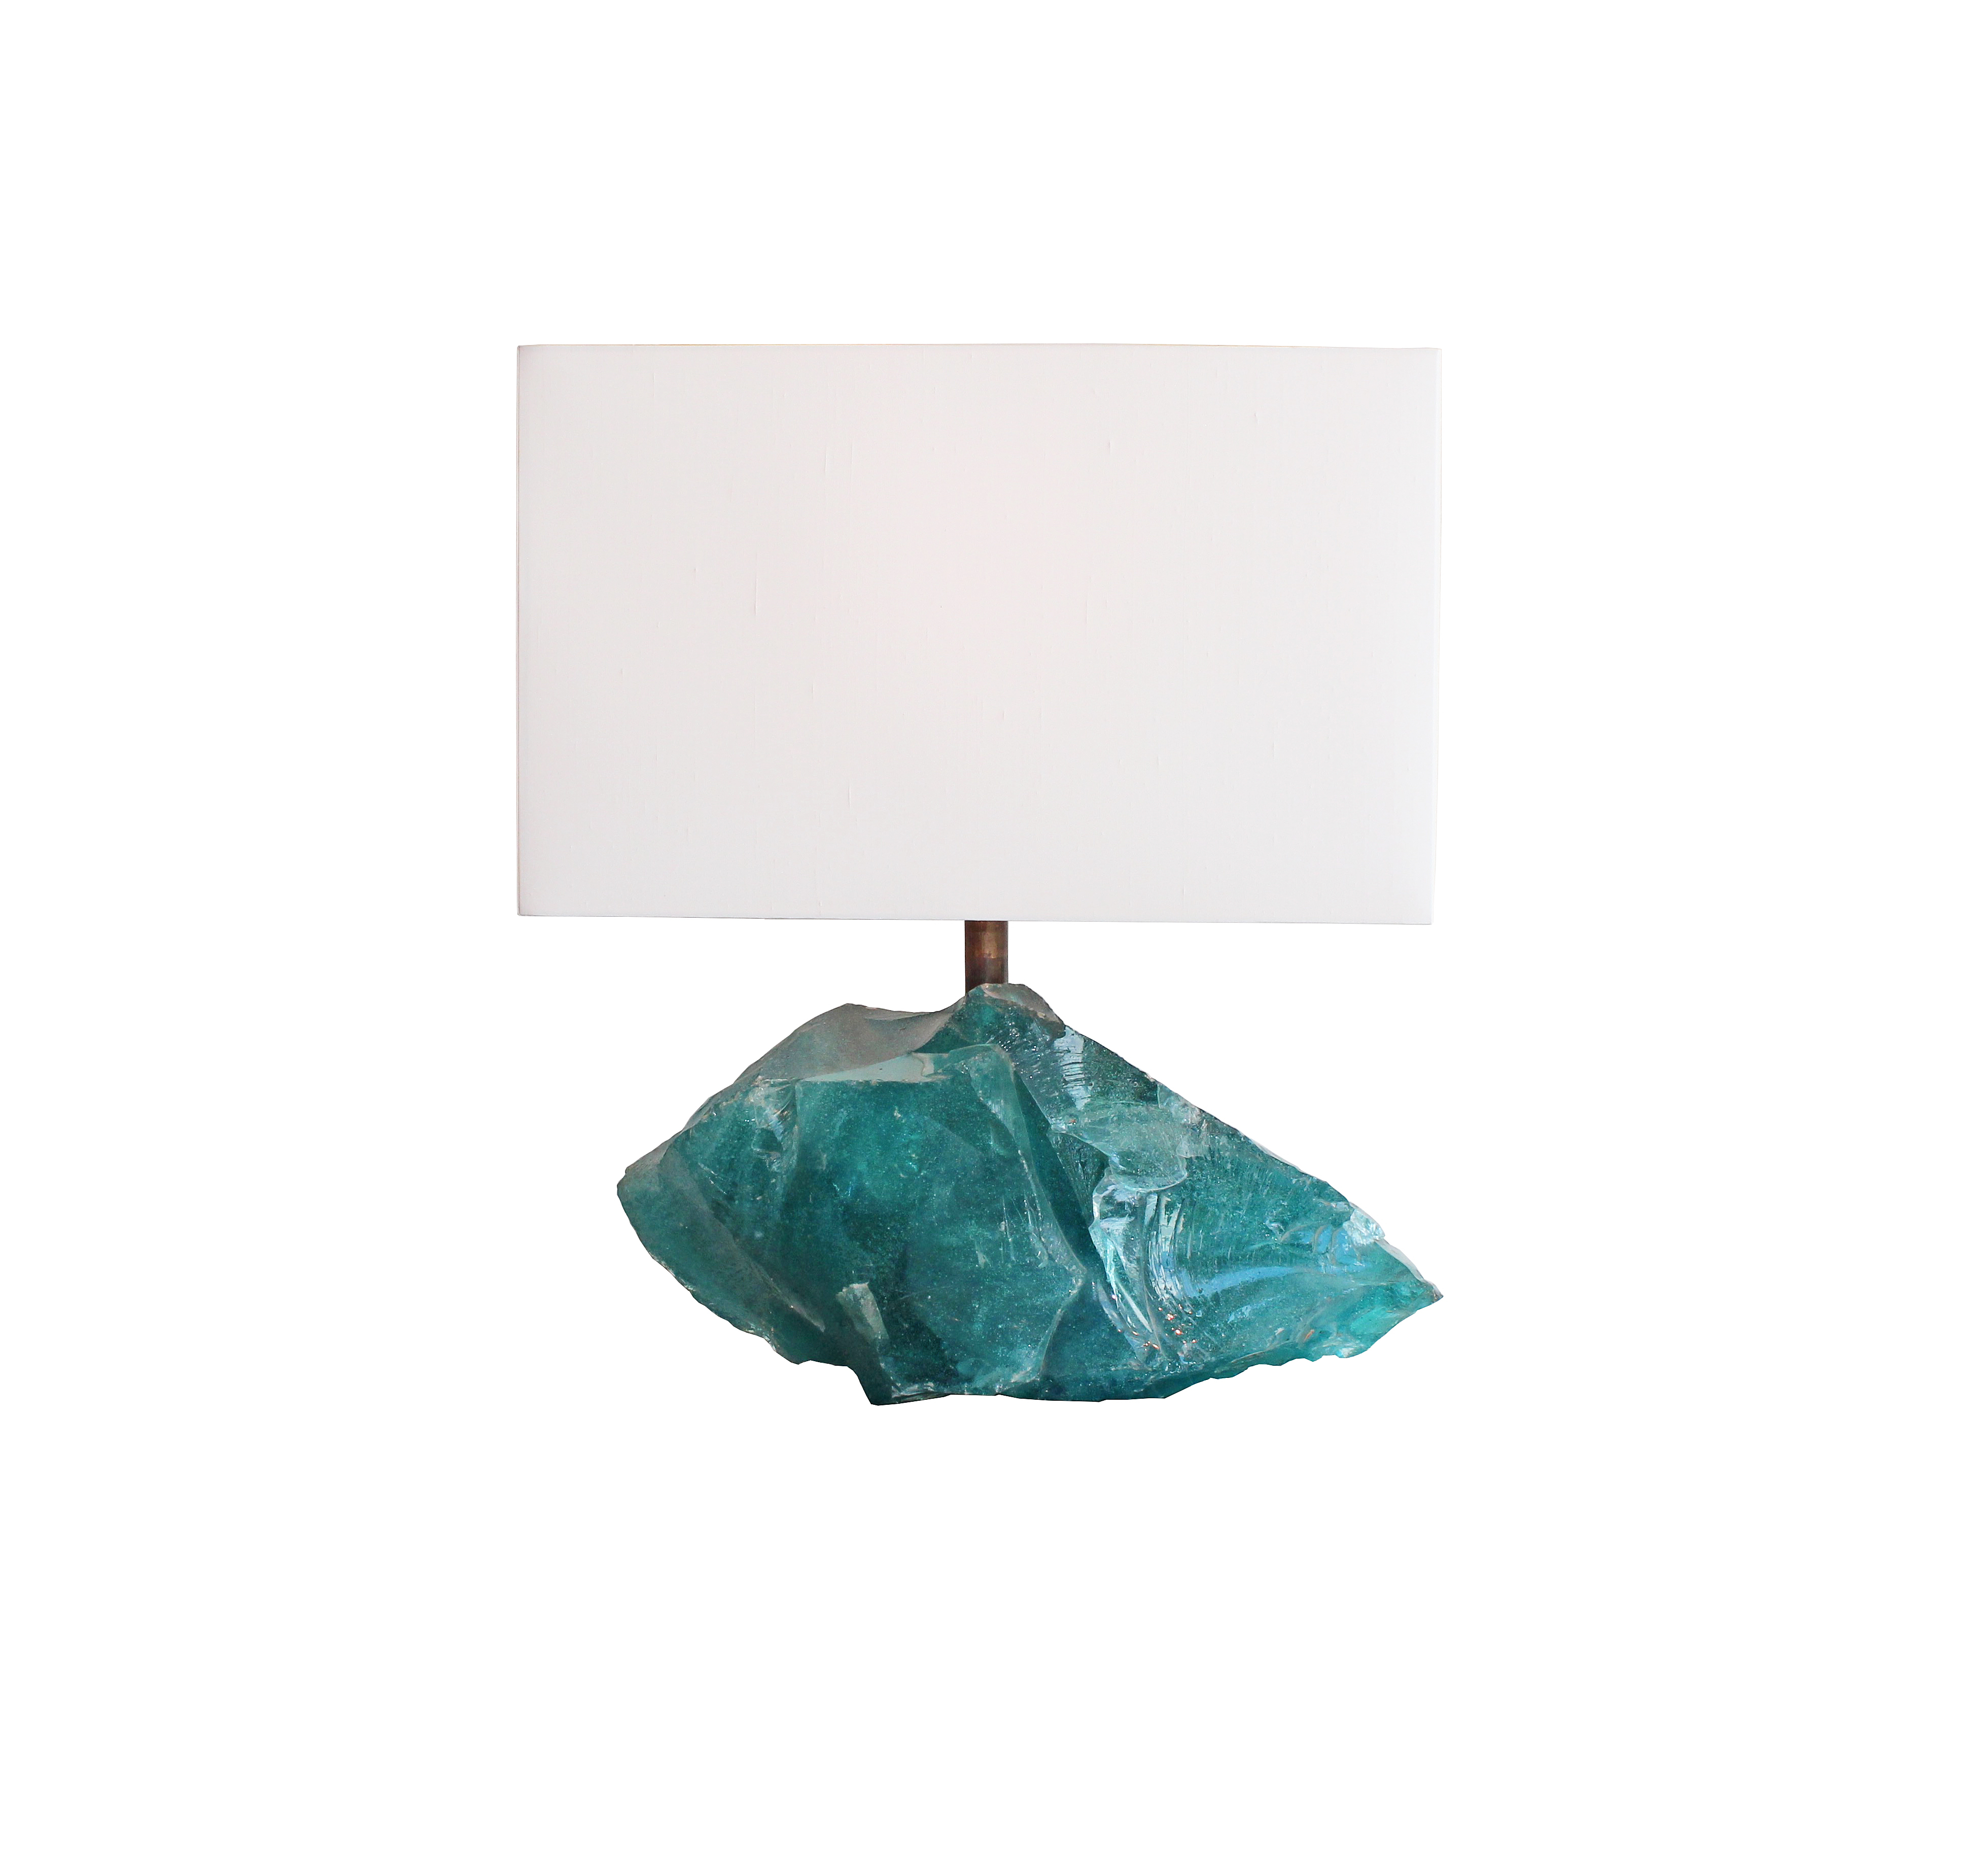 Glass Rock Table Lamp · 88 Gallery London | 86 88 Pimlico Road, SW1W 8PL  LONDON | +44(0)207 730 2728 | Powered By ArtSloution.